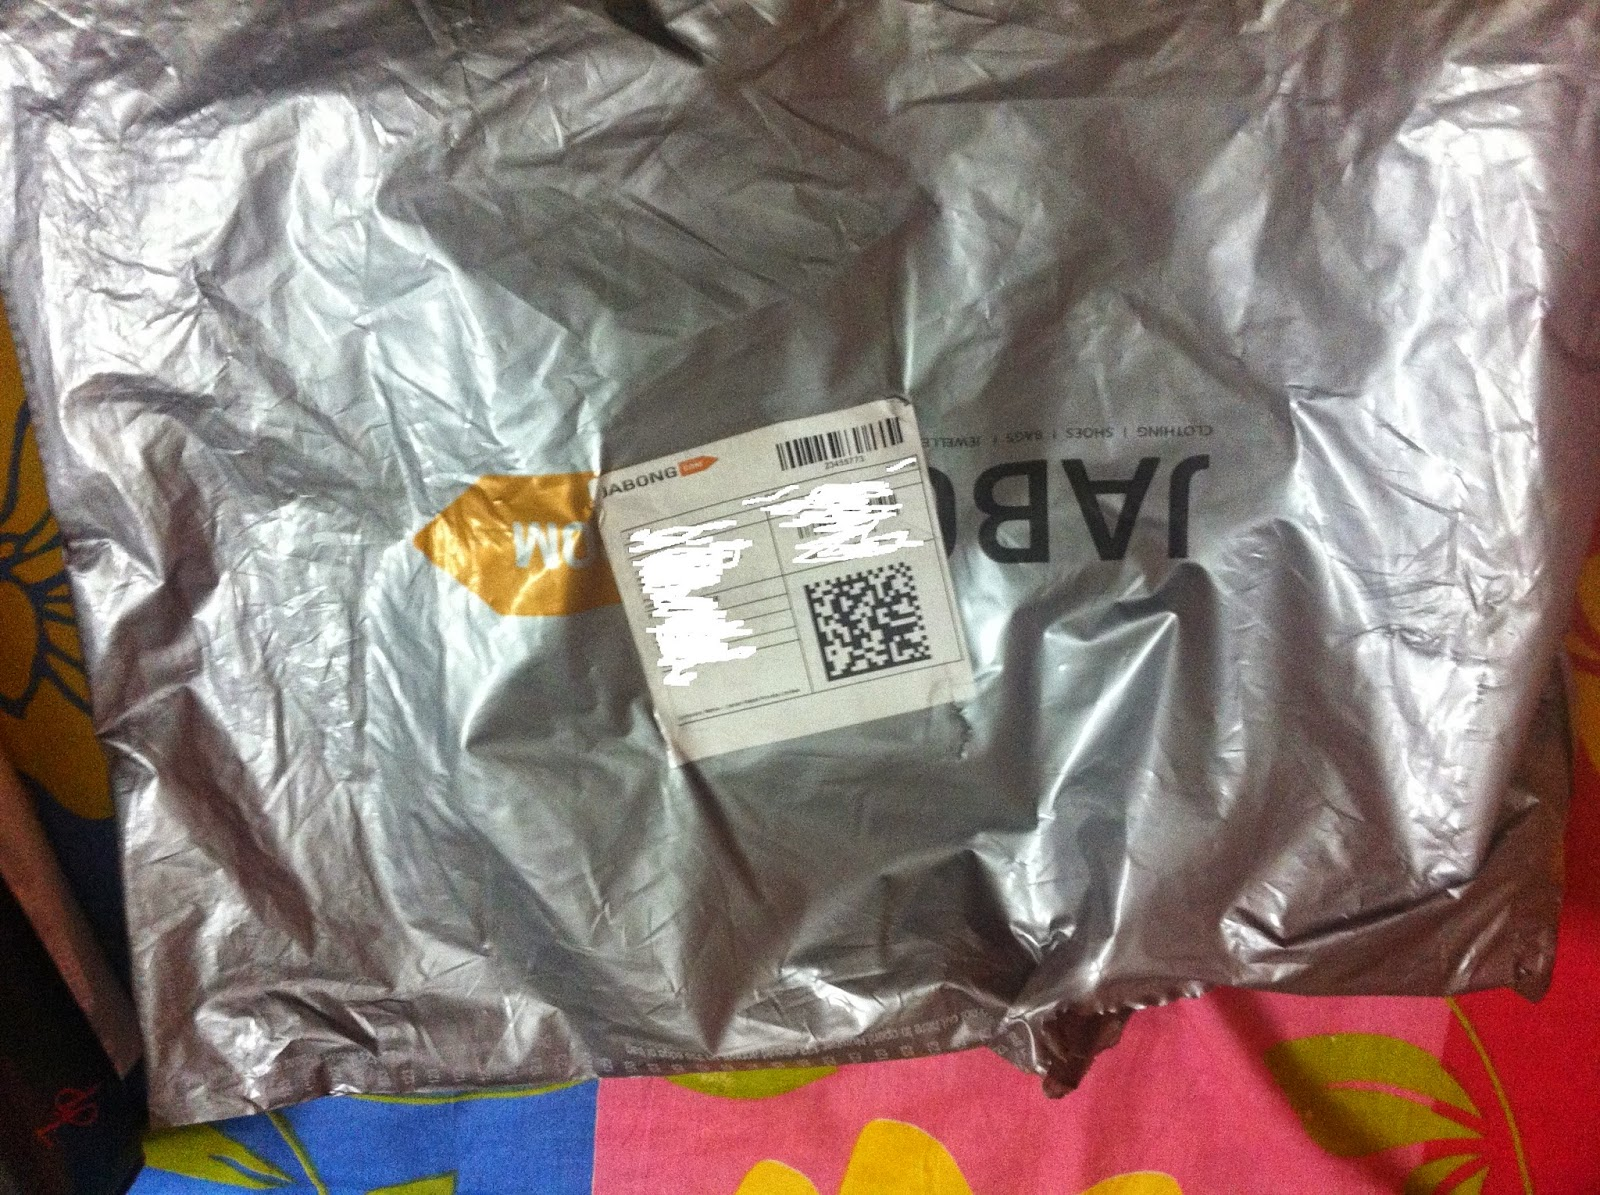 Shirt purchased from Jabong packing